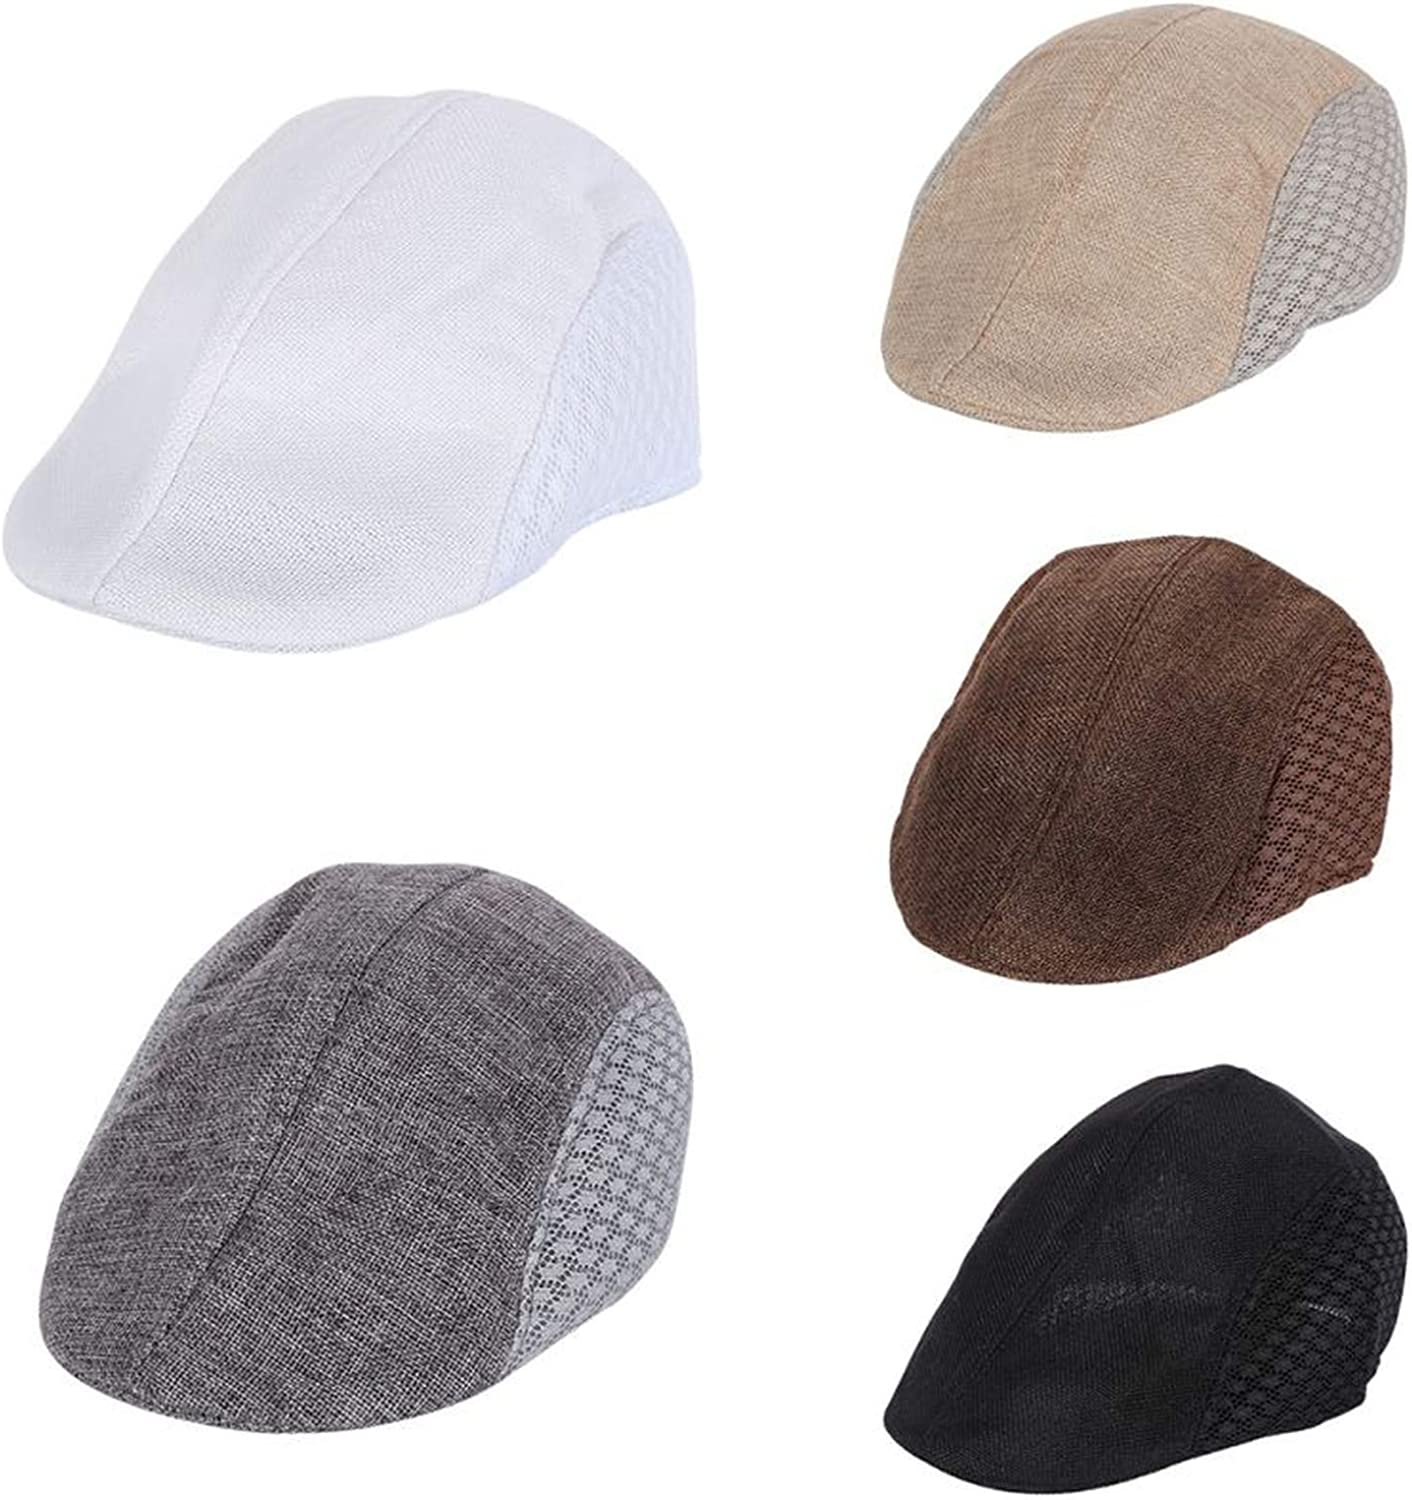 CHENTAI Fashion Mens Visors Duckbill Flat Hat Newsboy Style Hollow Cap Summer Driving